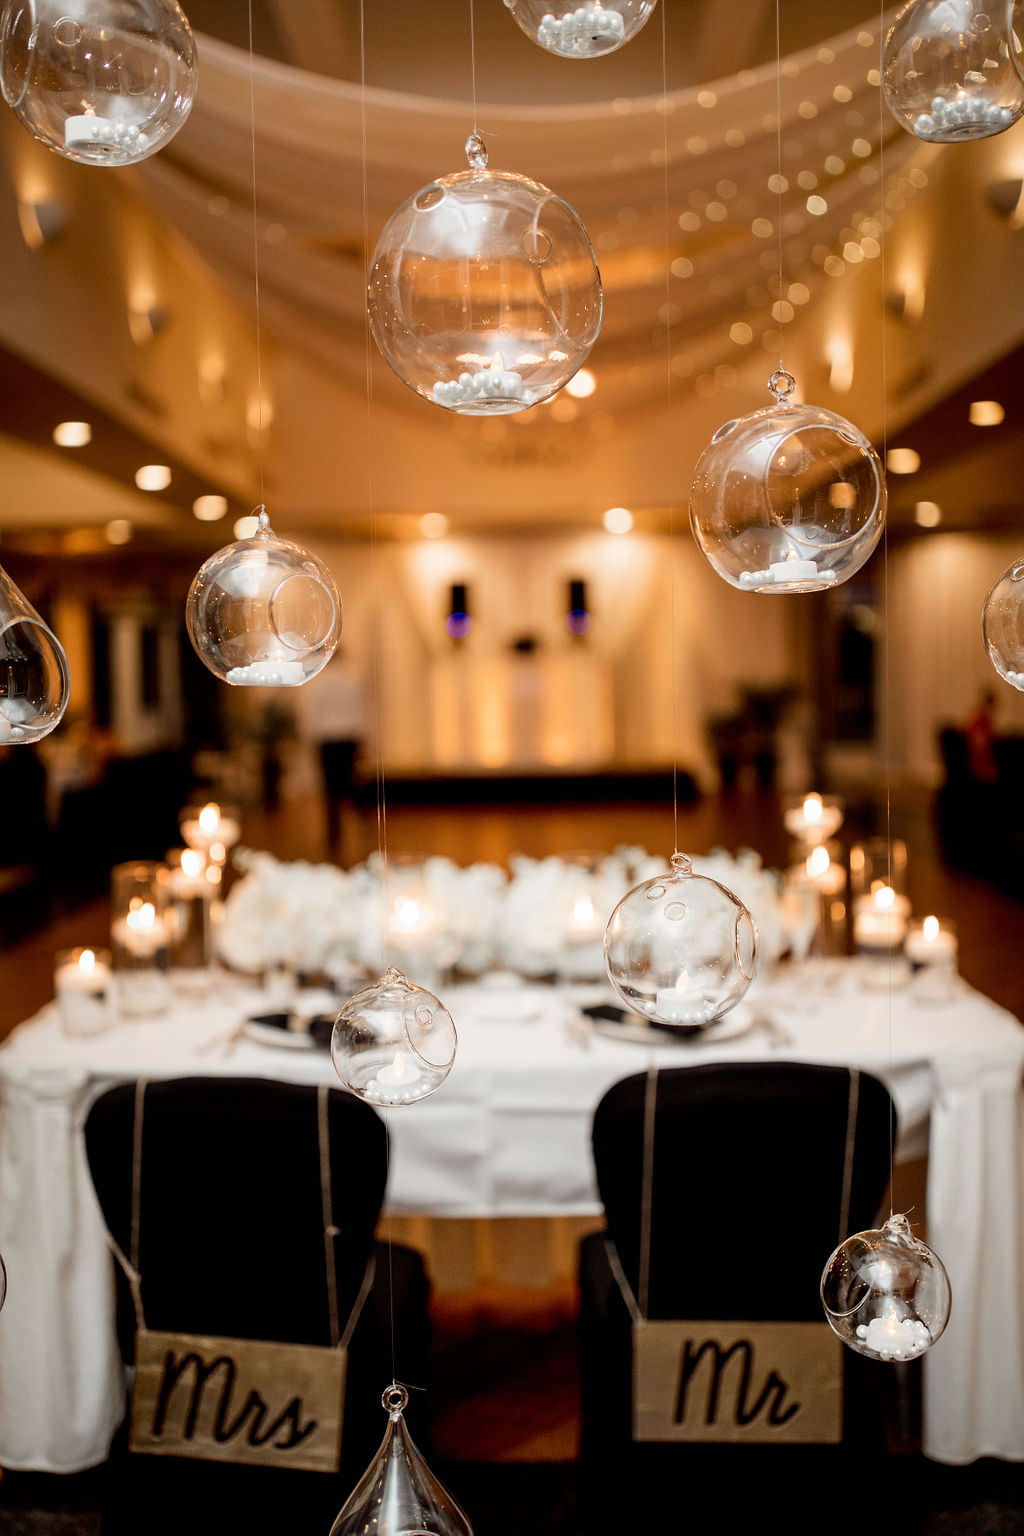 Classic, Formal Ballroom Wedding Reception Decor, Hanging Sphere Globes with Candles, Personalized Mr and Mrs Chair Signs and Sweetheart Table